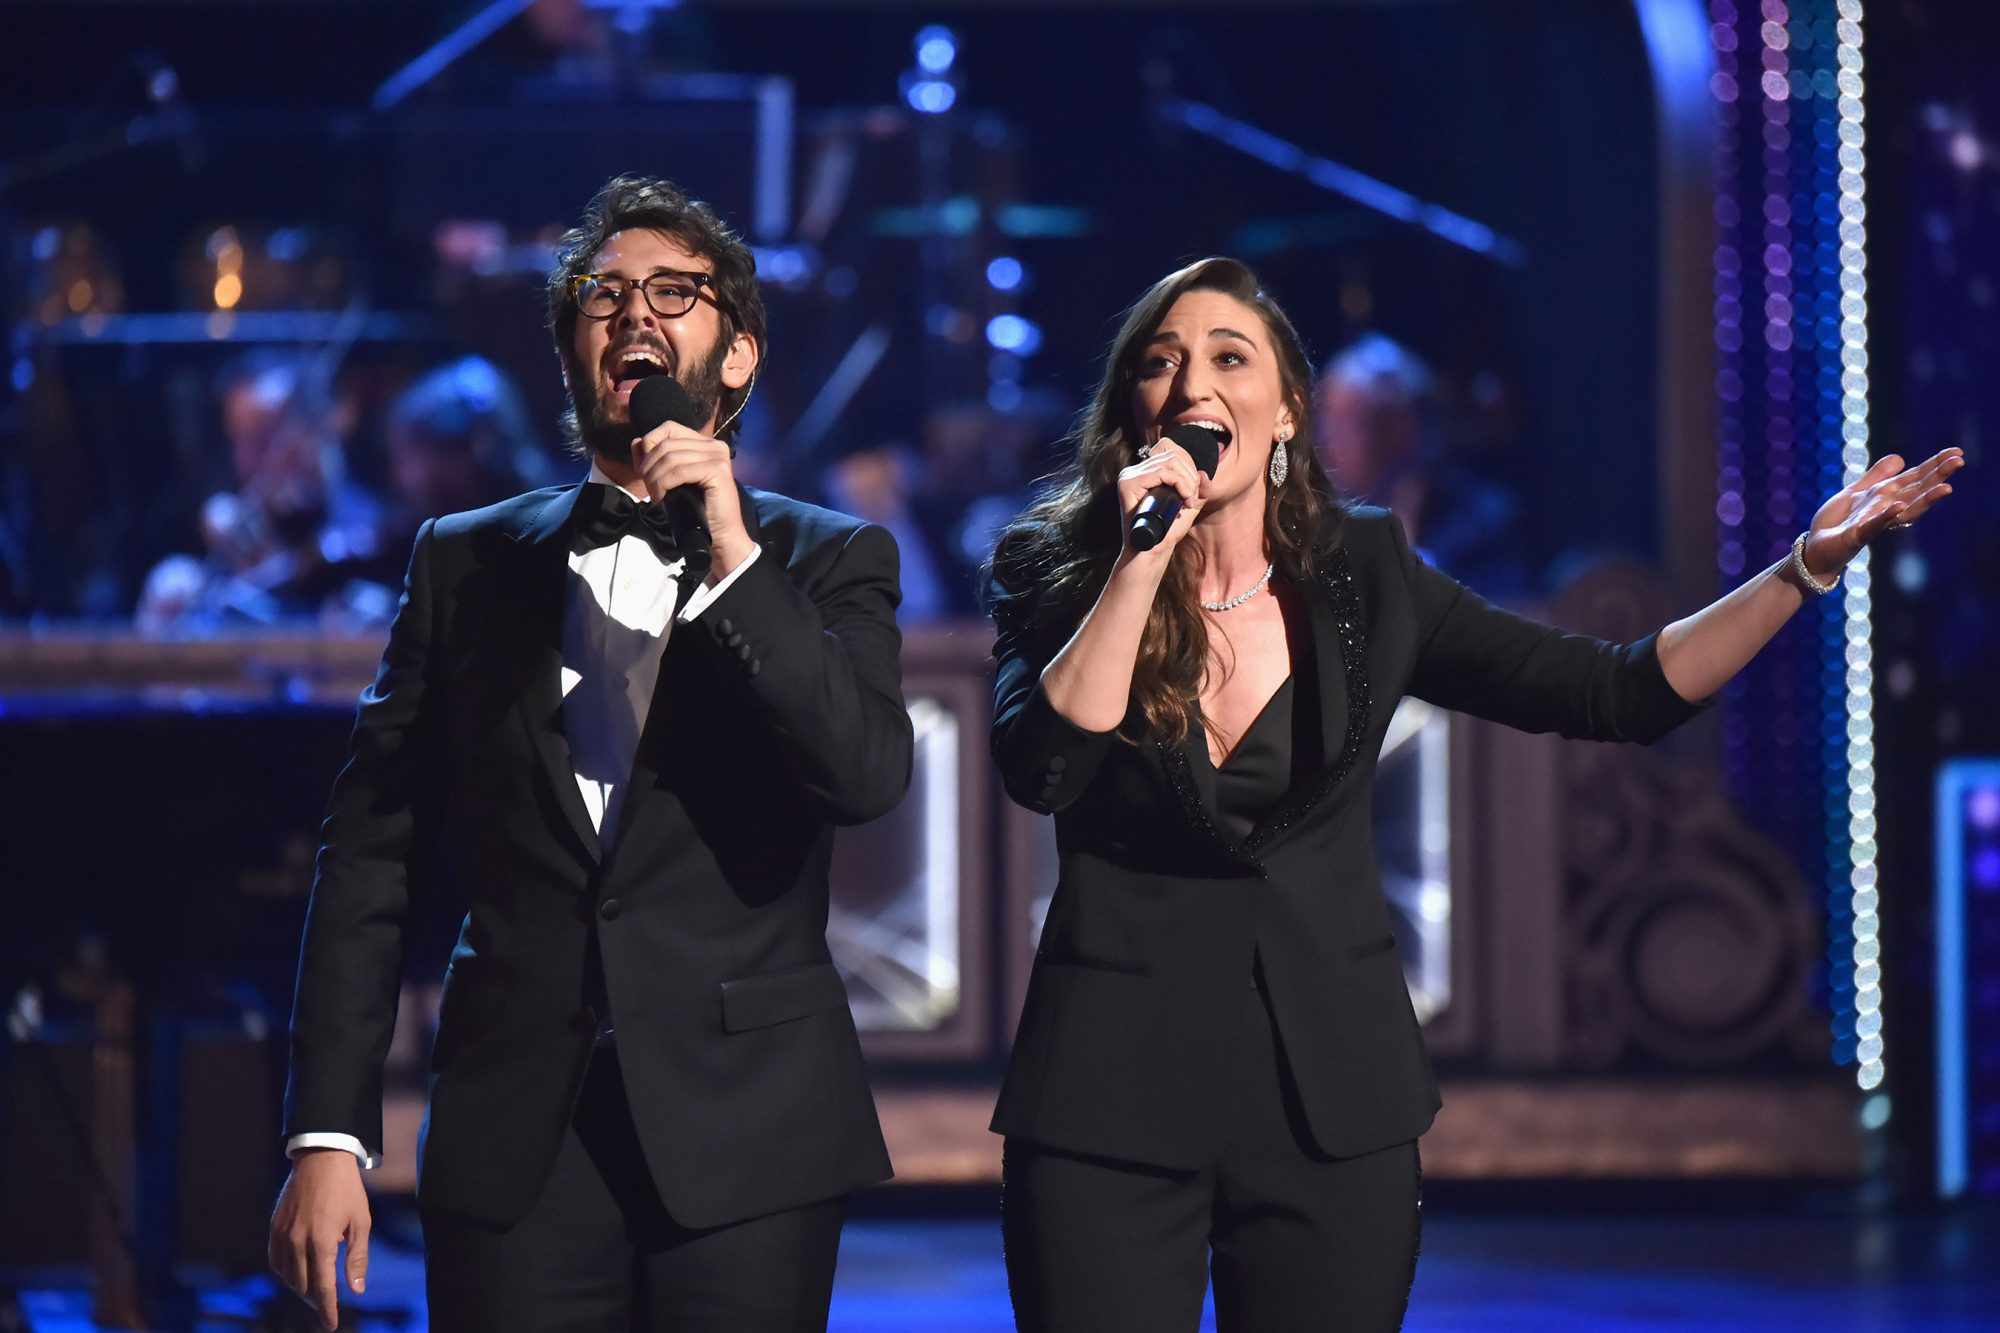 Josh Groban and Sara Bareilles' opening number